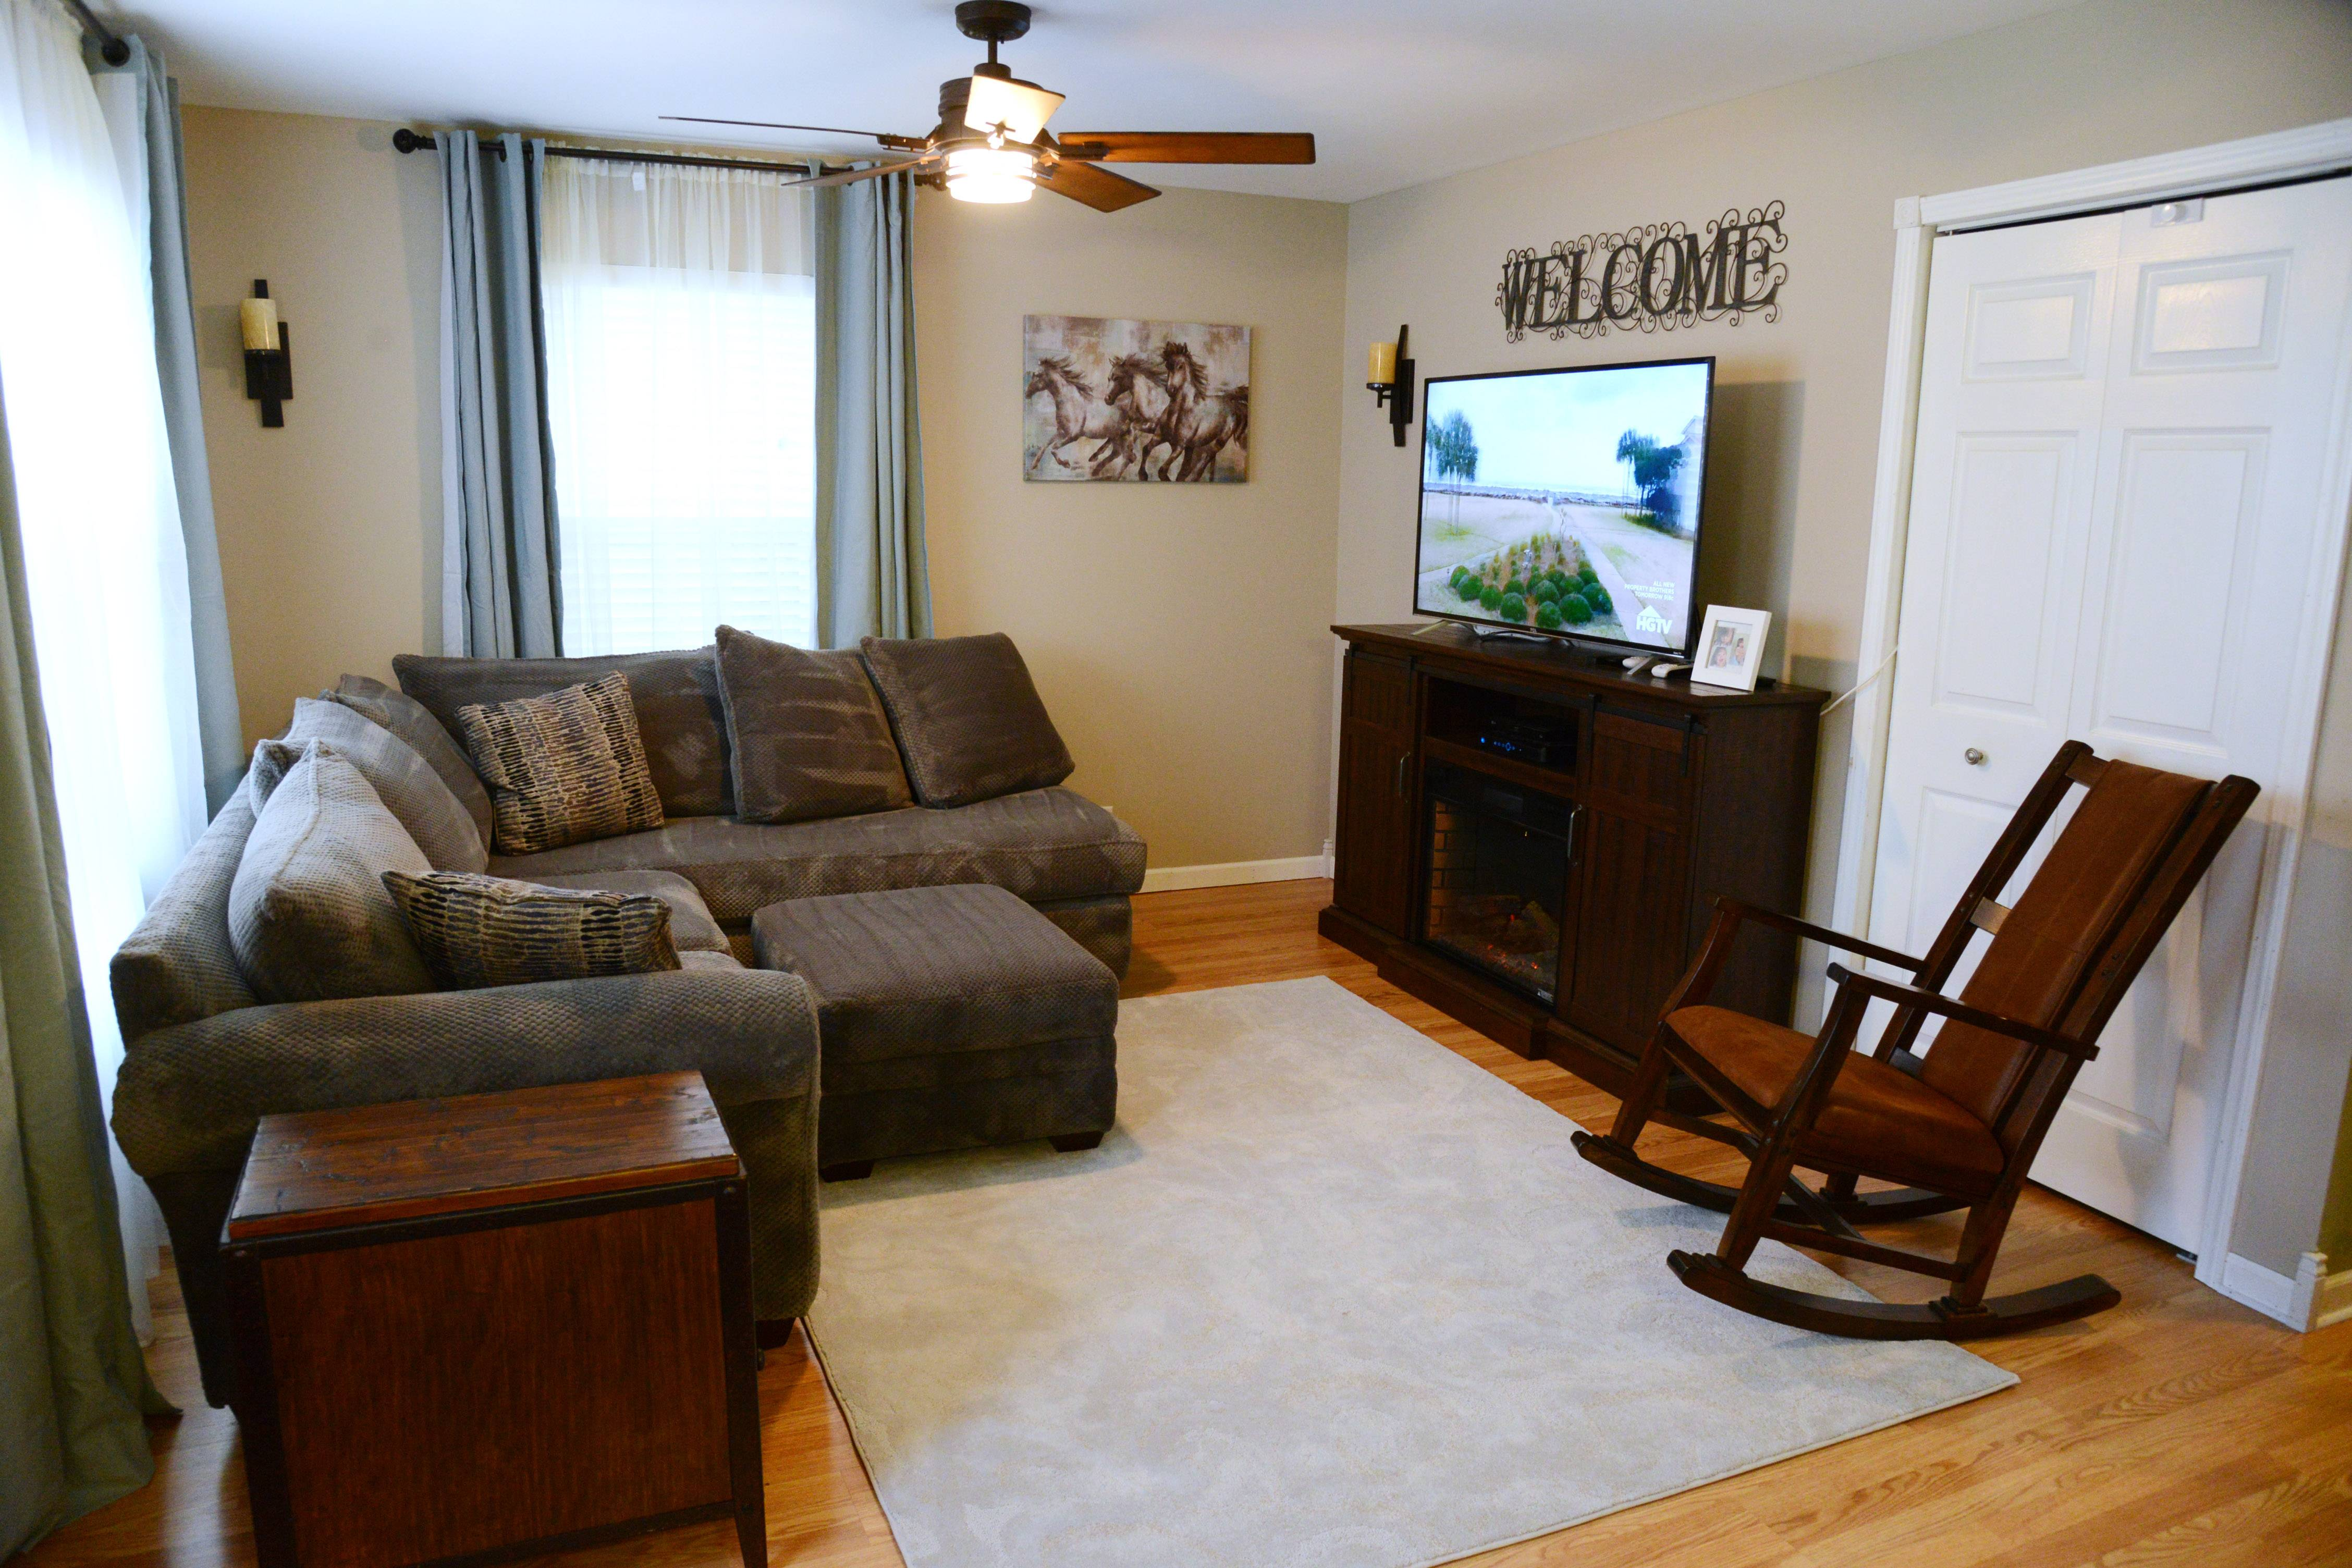 Cindy Walk's living room makeover project in Fox Lake.